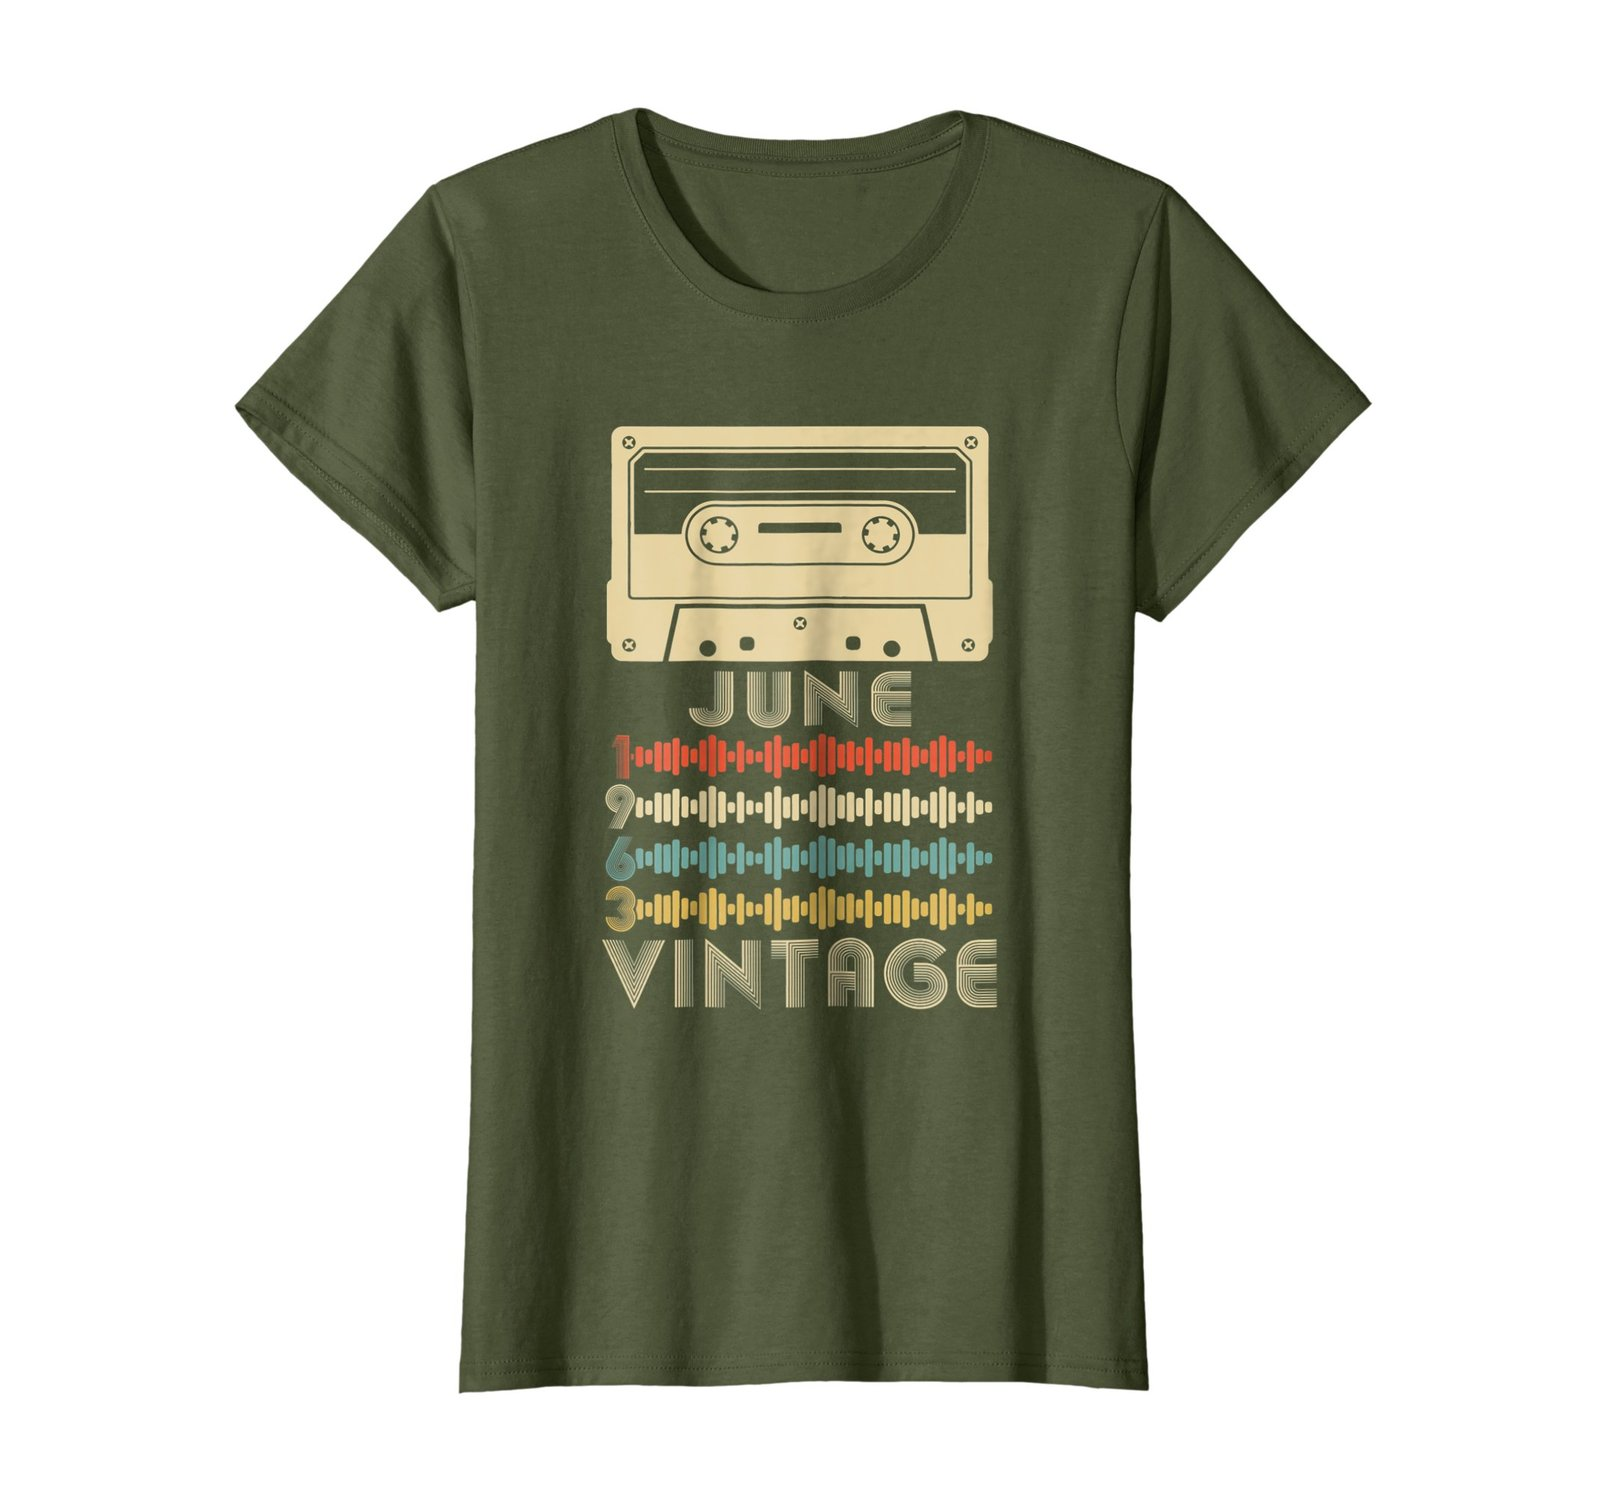 Funny Shirts - Vintage Retro Made In June 1963 55th Birthday Gift 55 years Wowen